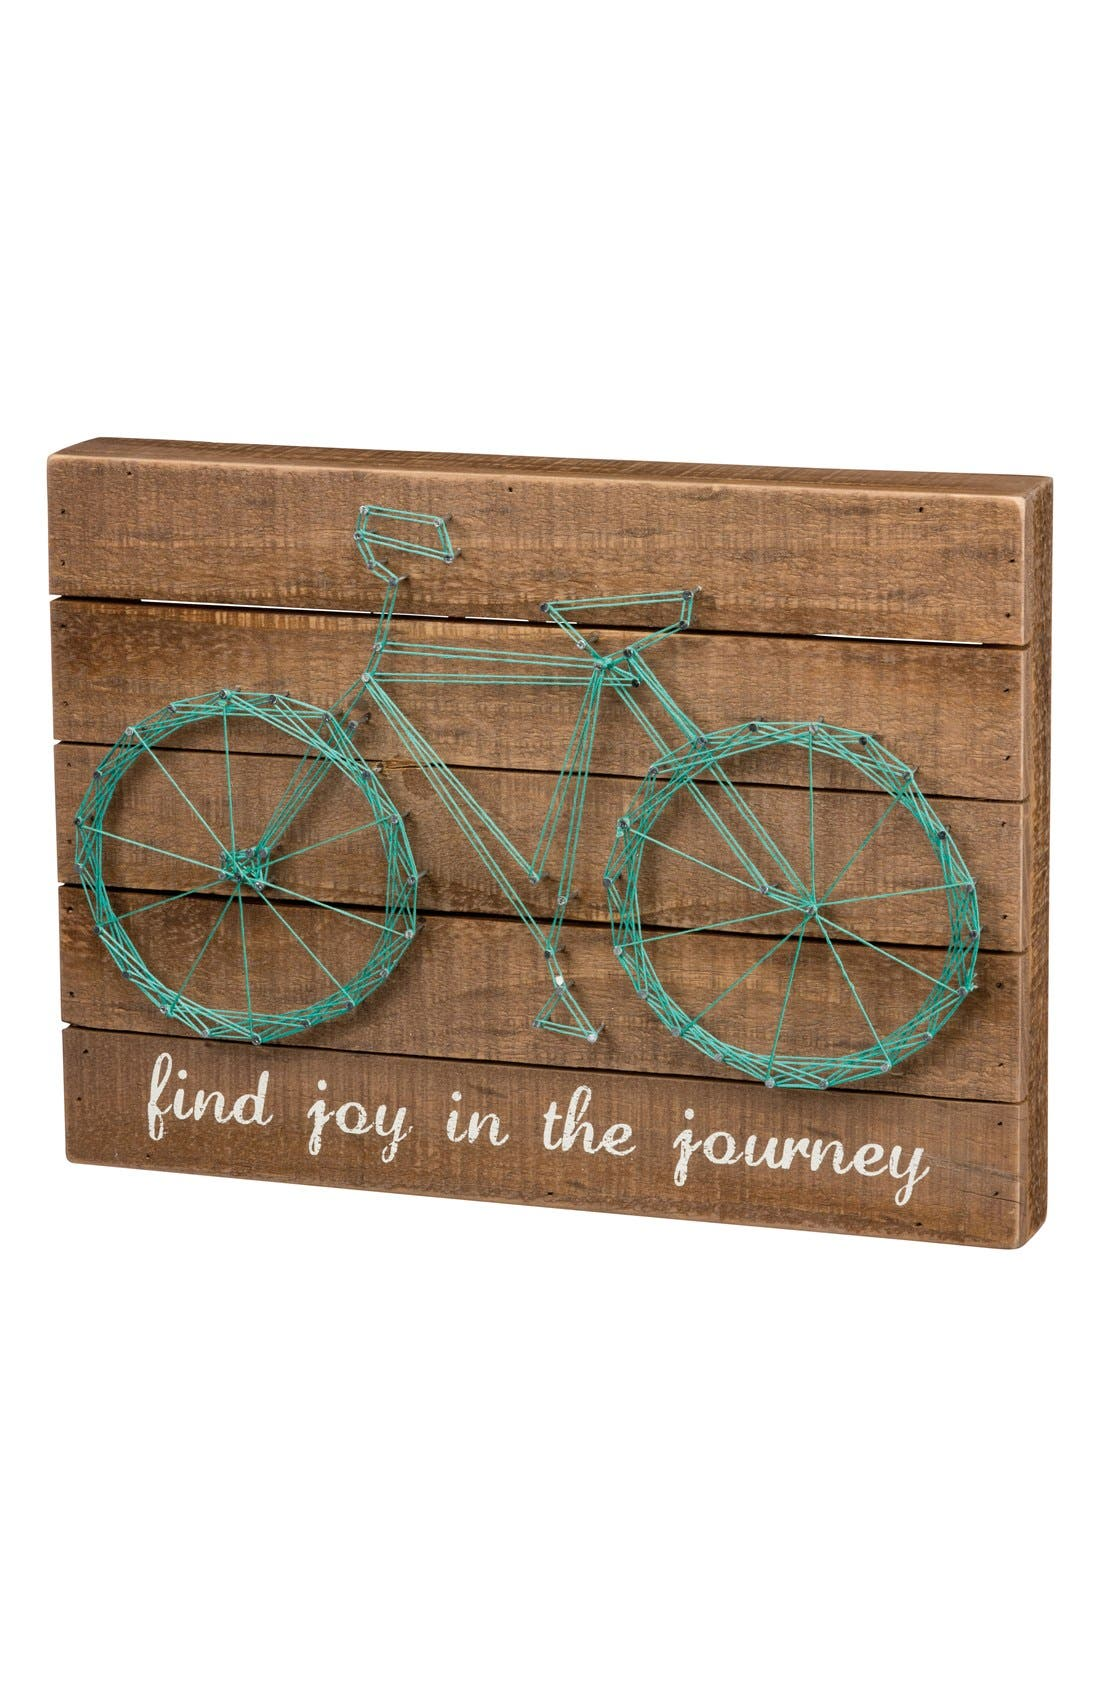 Main Image - Primitives by Kathy 'Find Joy in the Journey' String Art Box Sign